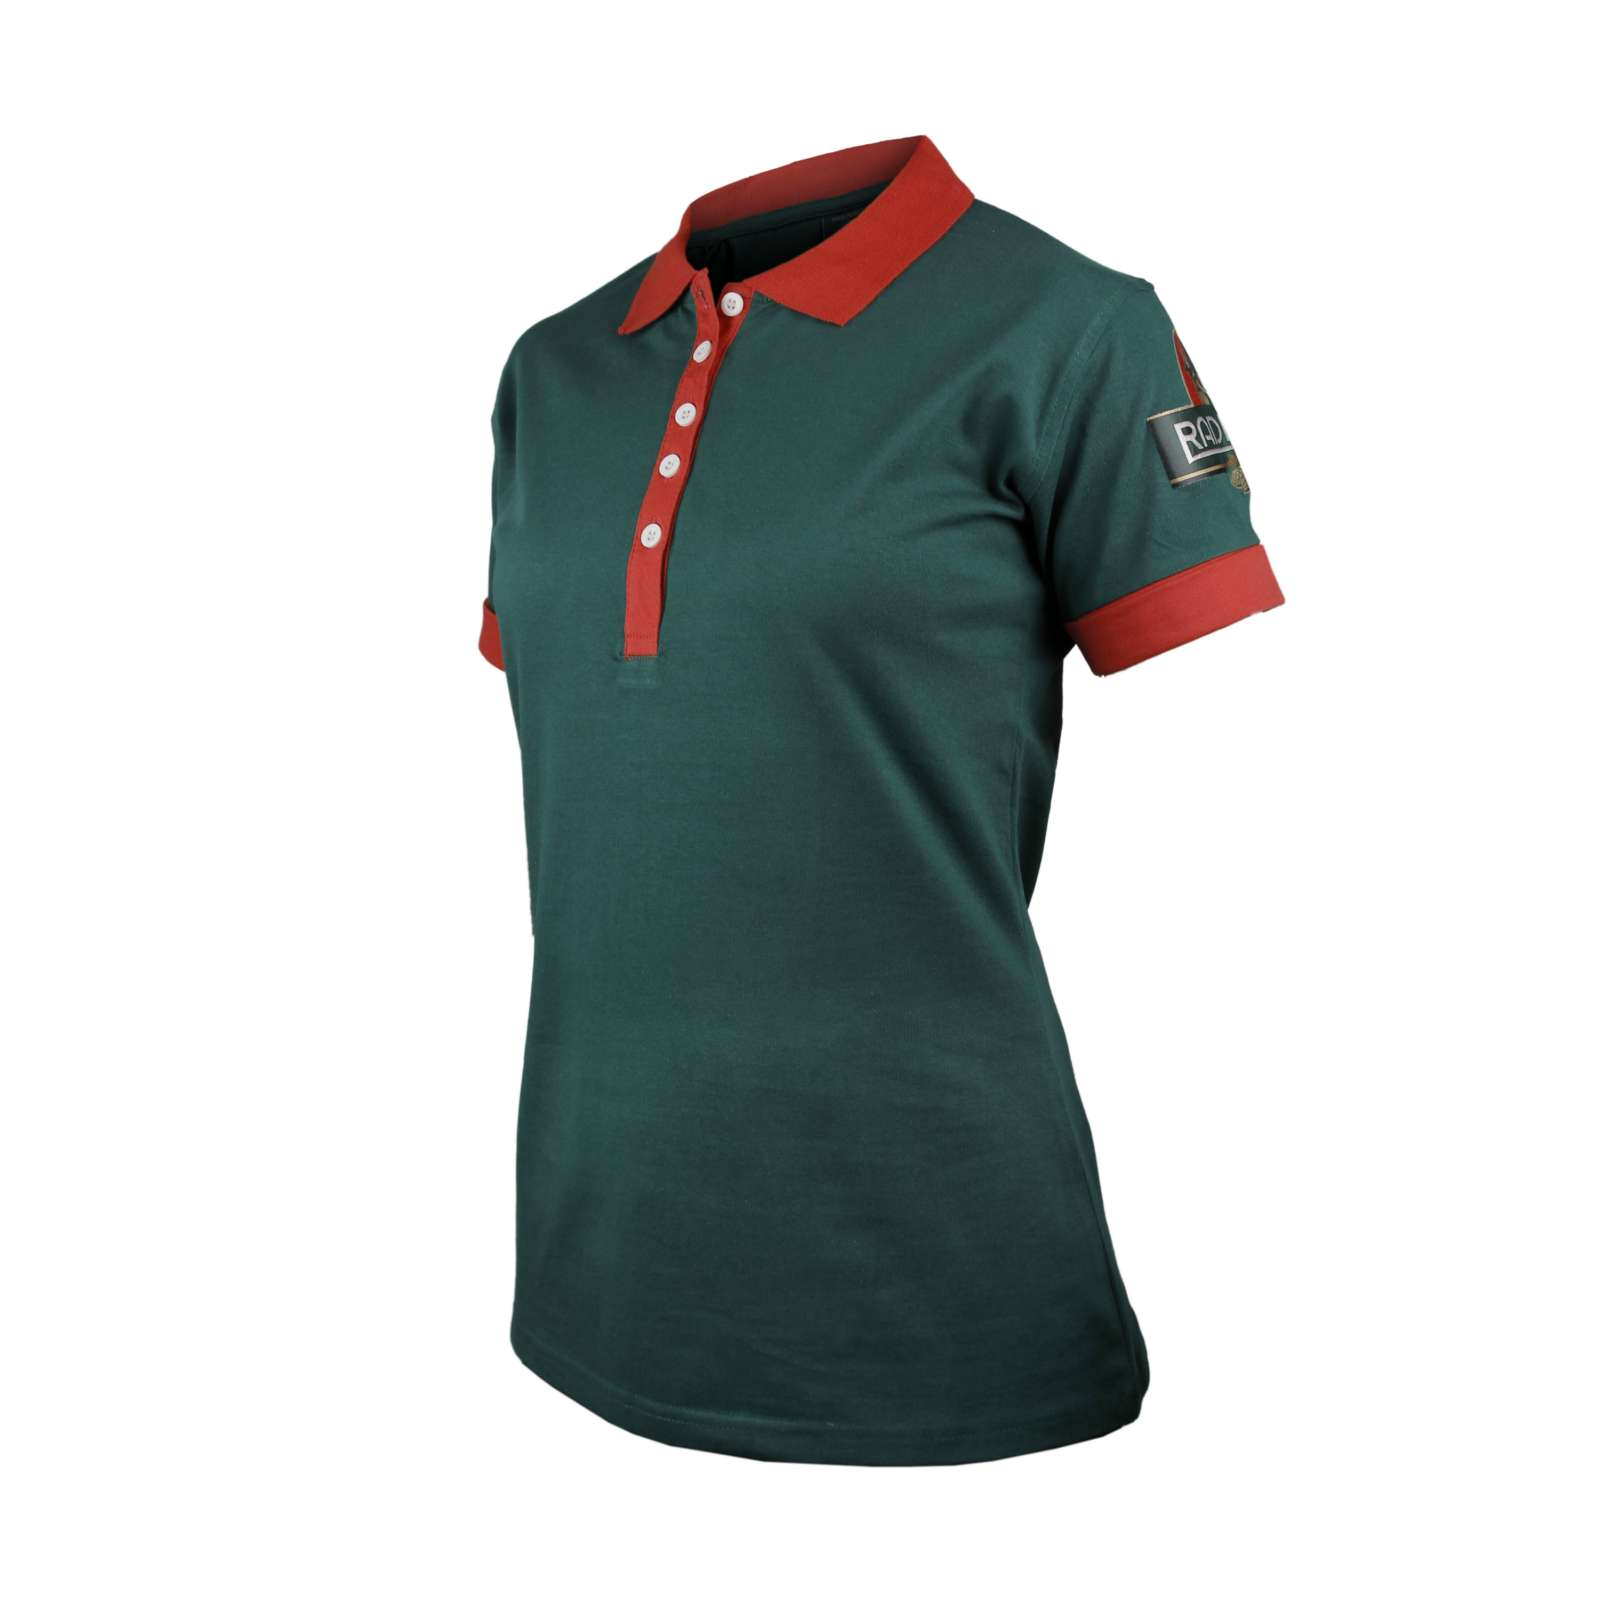 Women ´s polo shirt Radegast design